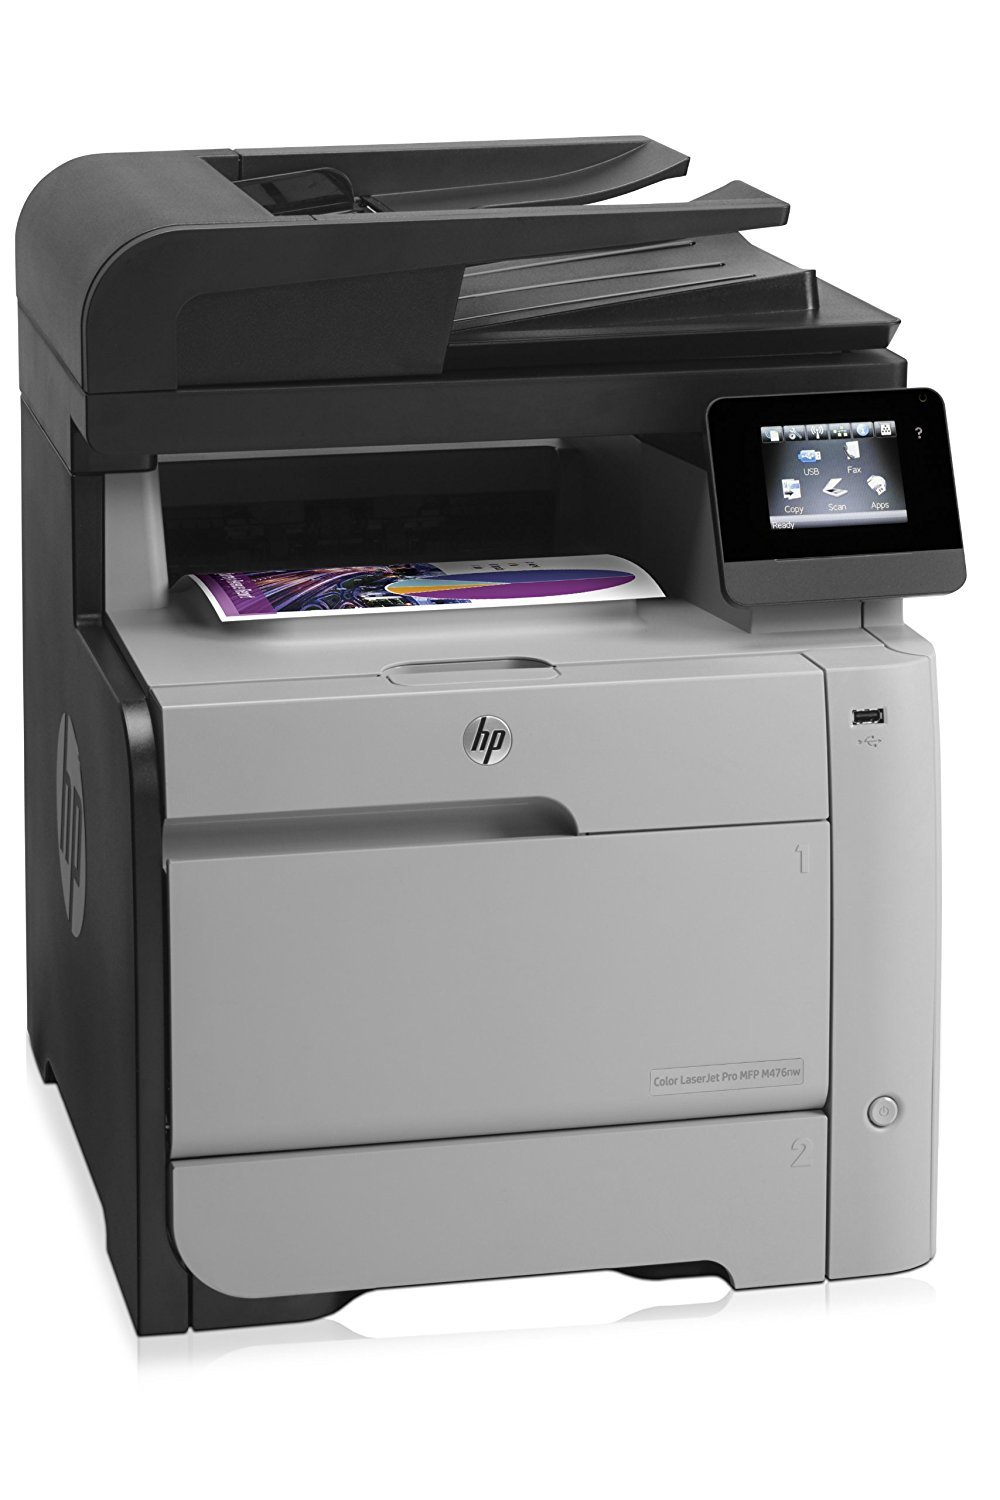 Amazon.com: HP LaserJet Pro M476nw Wireless All-in-One Color Printer,  Amazon Dash Replenishment ready (Discontinued By Manufacturer): Electronics